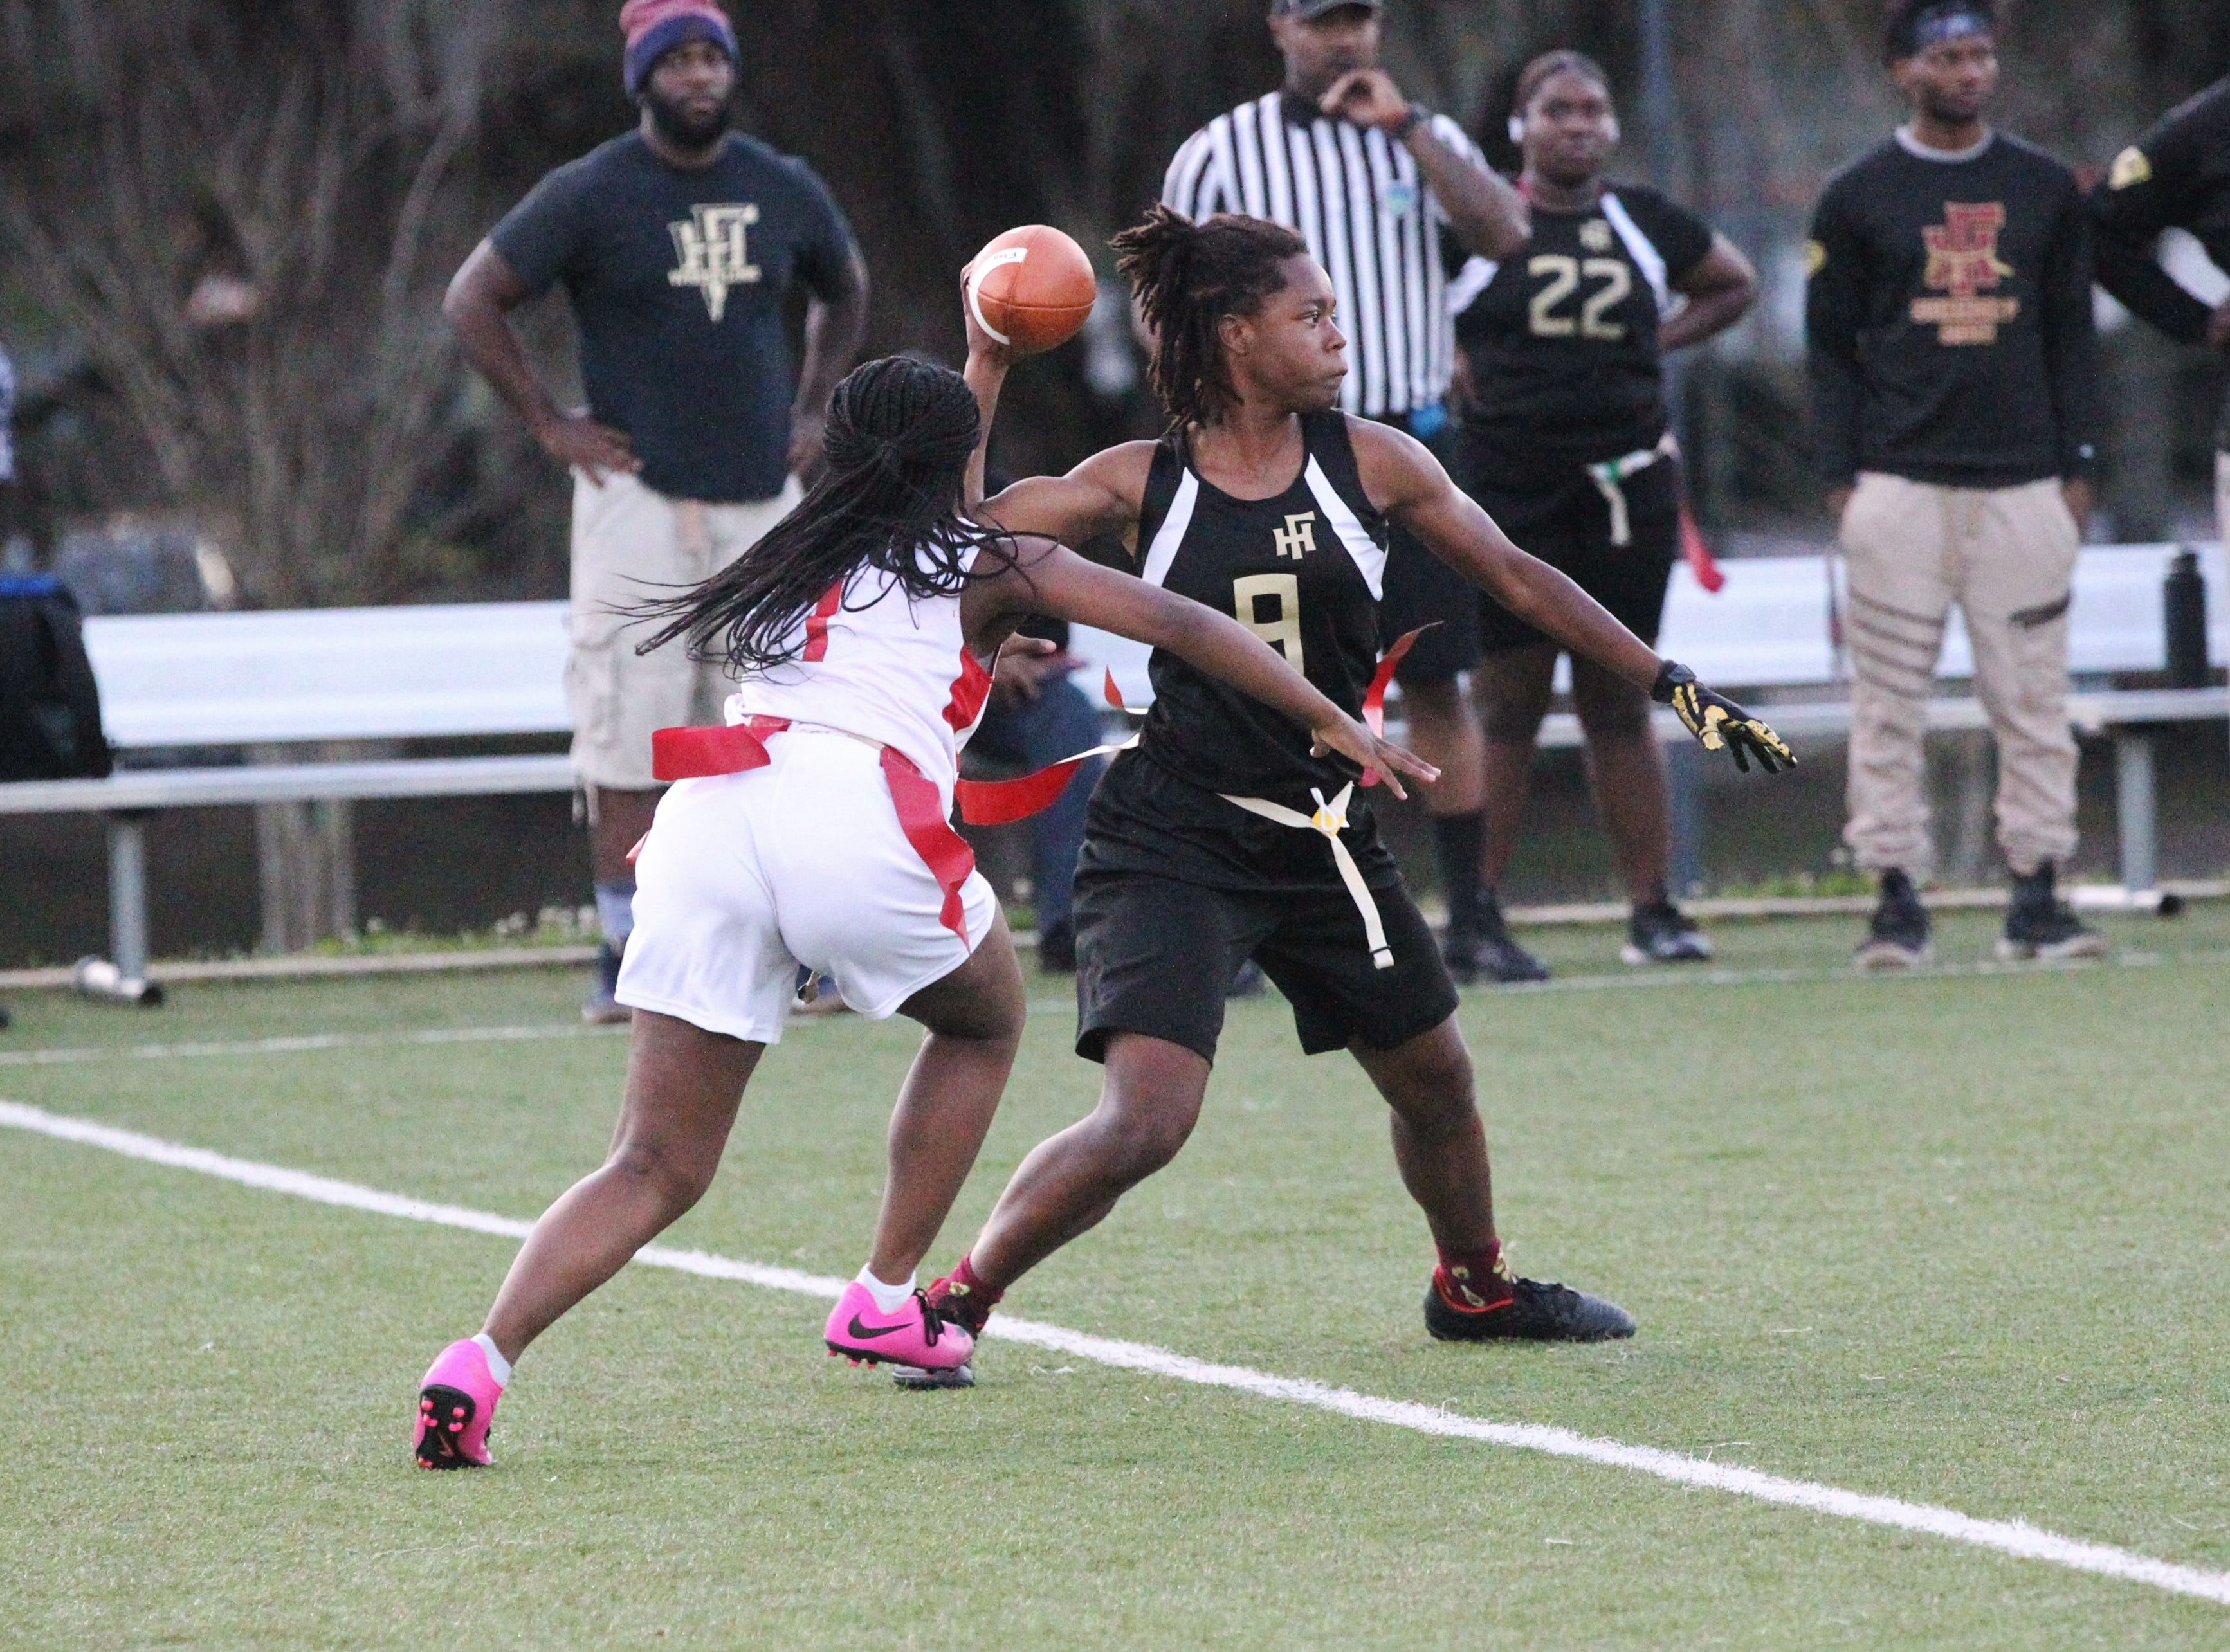 Florida High quarterback Janae Scott throws a pass as the Seminoles and Leon play during the 2019 flag football preseason classic at Florida A&M's intramural turf fields on Feb. 27, 2019.